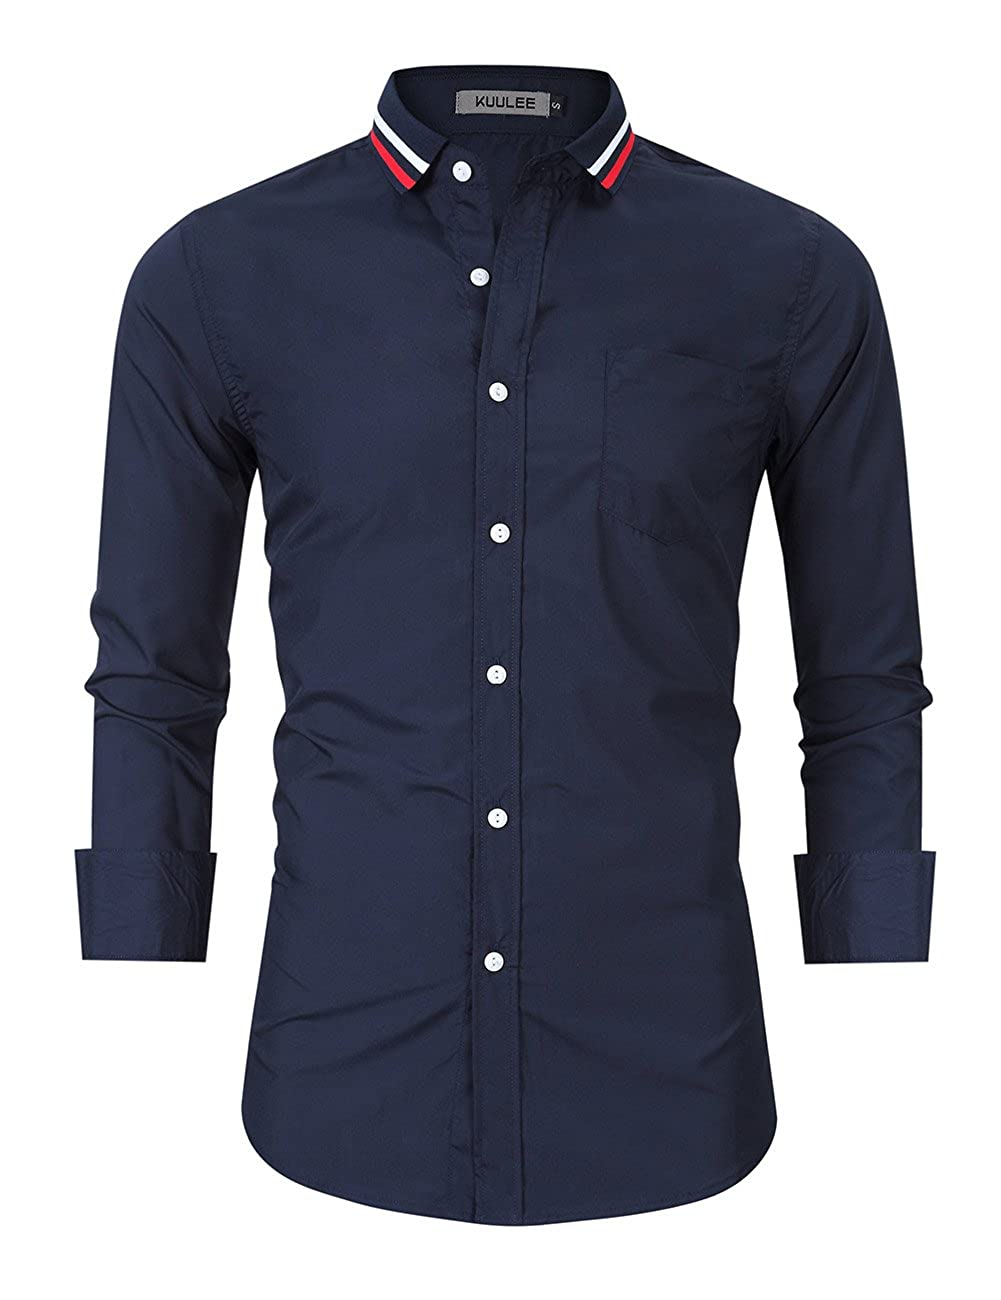 957dcc4228eb99 Best Casual Button Shirts – EDGE Engineering and Consulting Limited